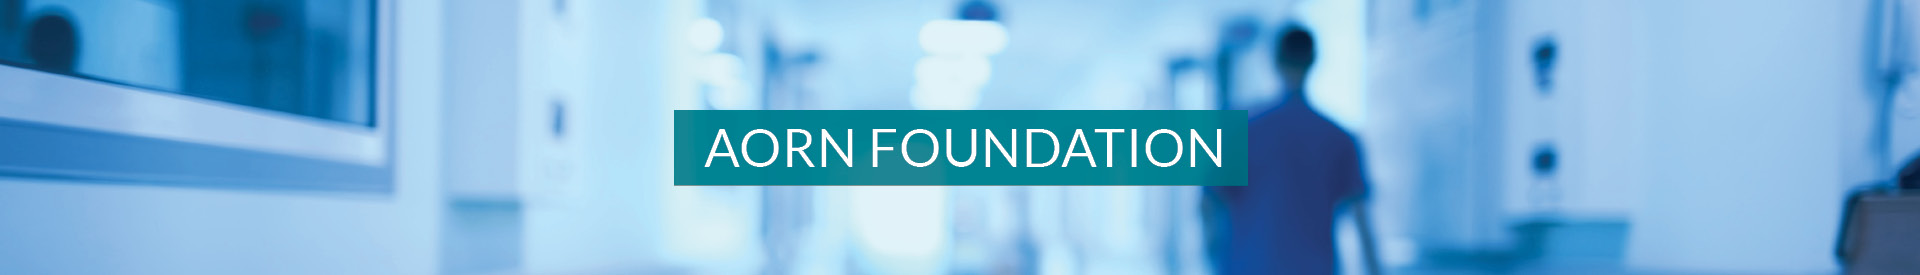 AORN Foundation